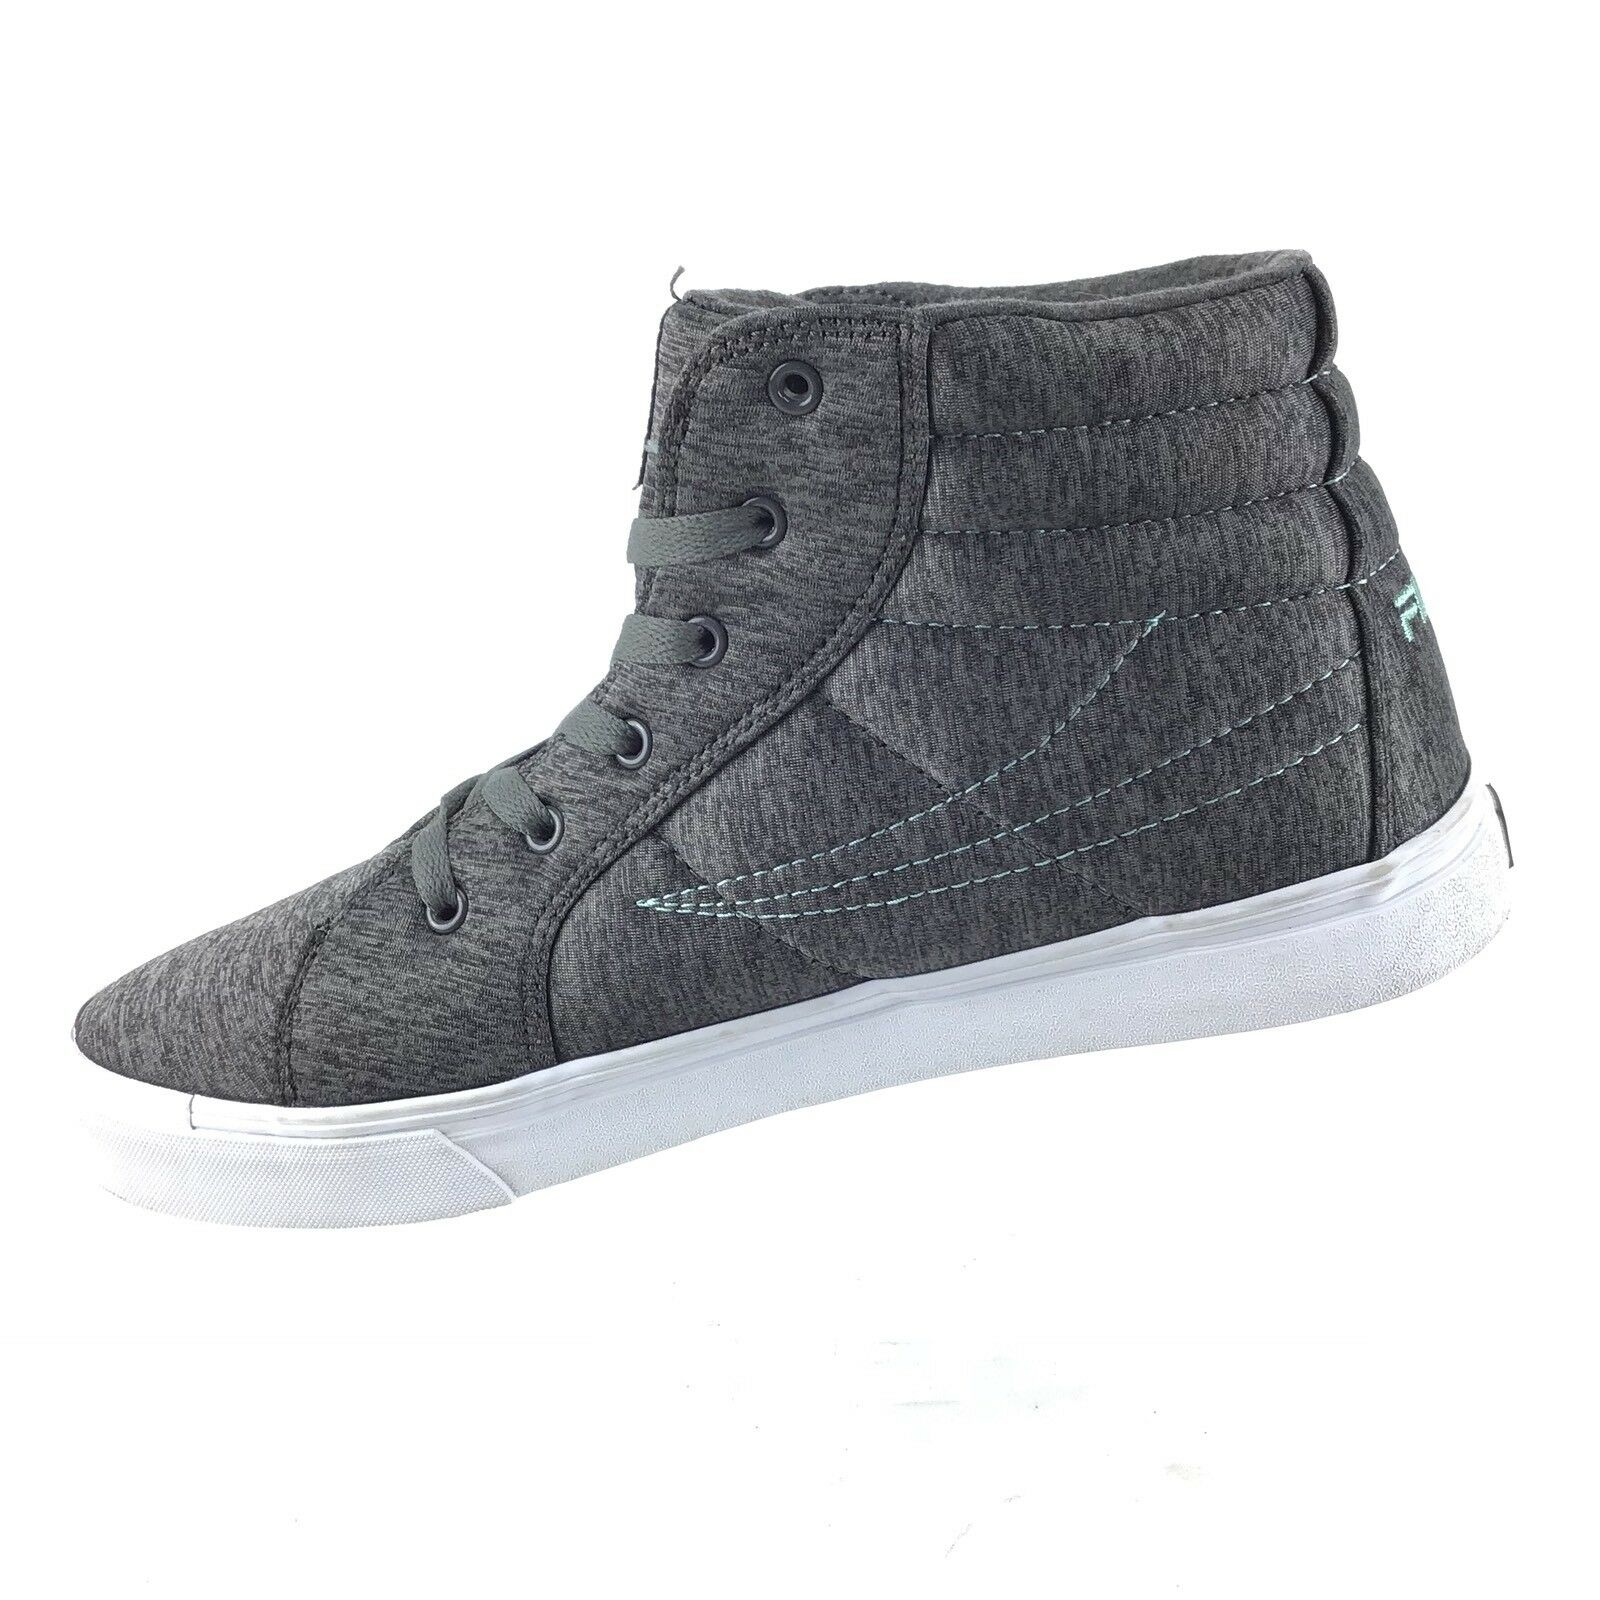 quality design cf623 91d0a ... Fila mujeres es cortina de humo humo humo gris High Top Sneakers Casual  Lace Up zapatos ...